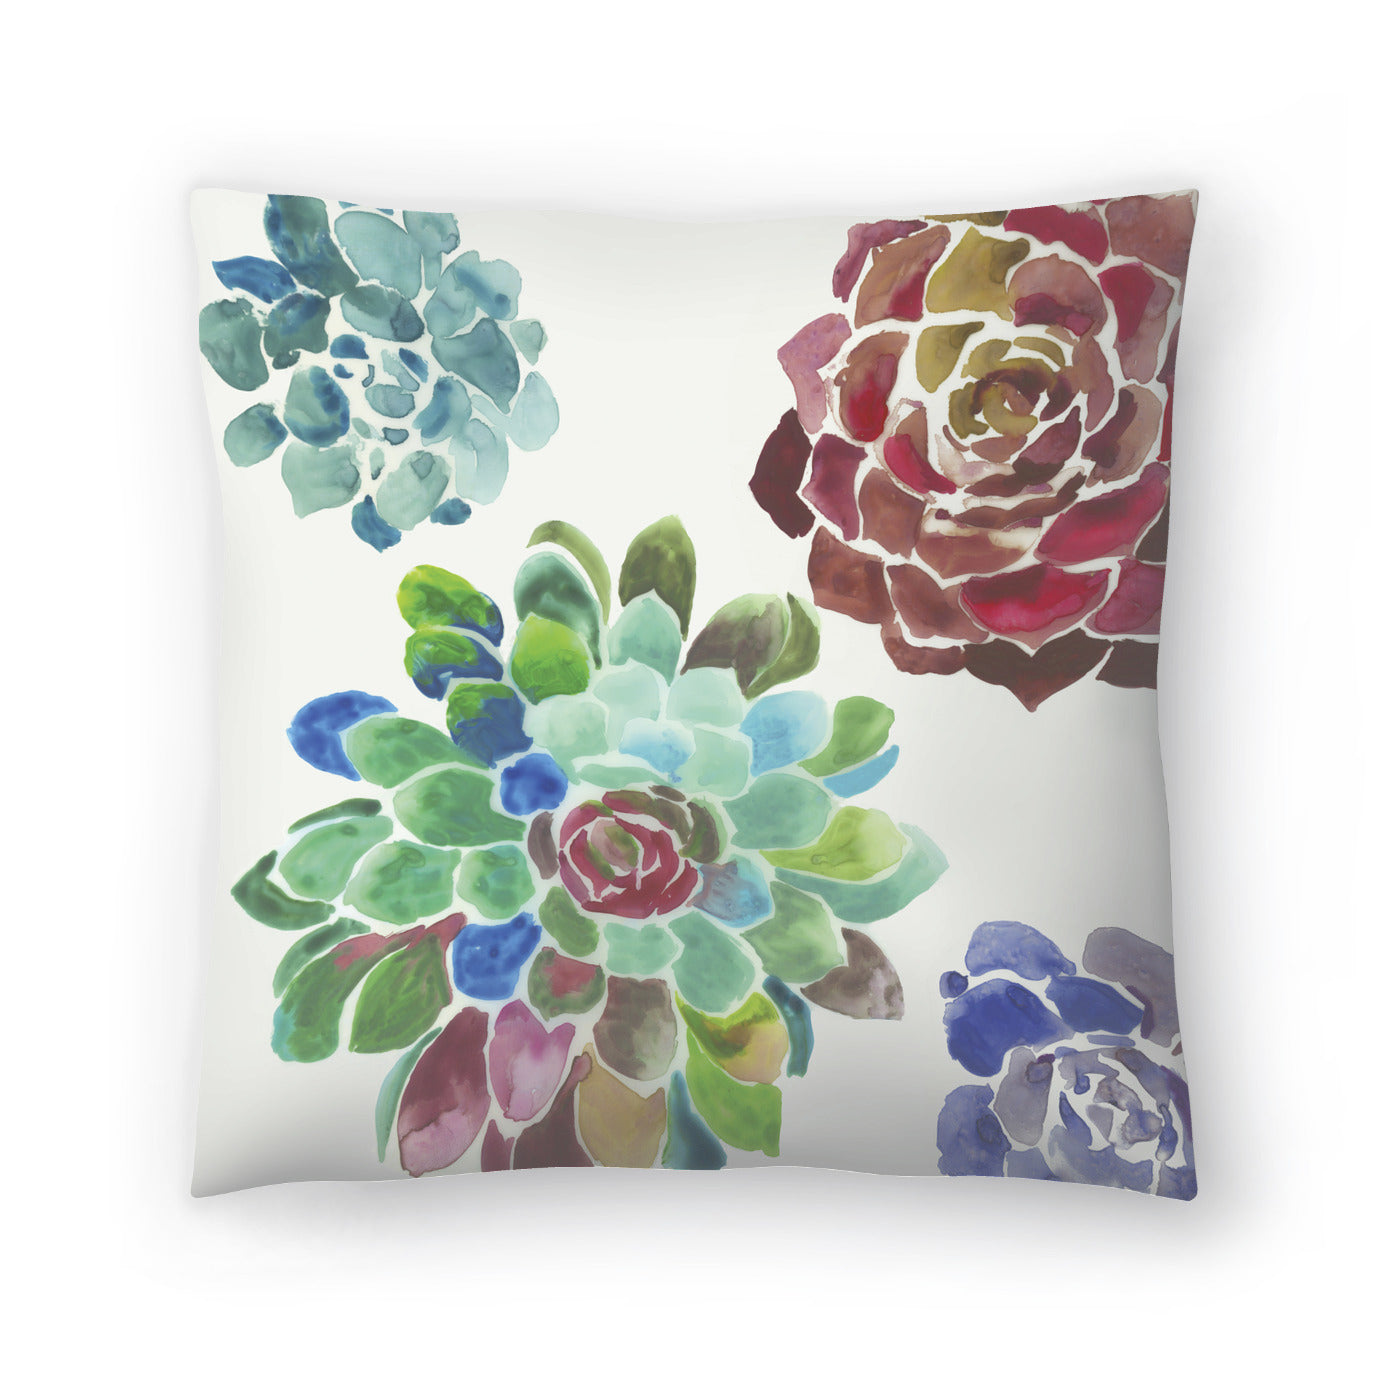 Water Succulents I by PI Creative Art Decorative Pillow - Decorative Pillow - Americanflat